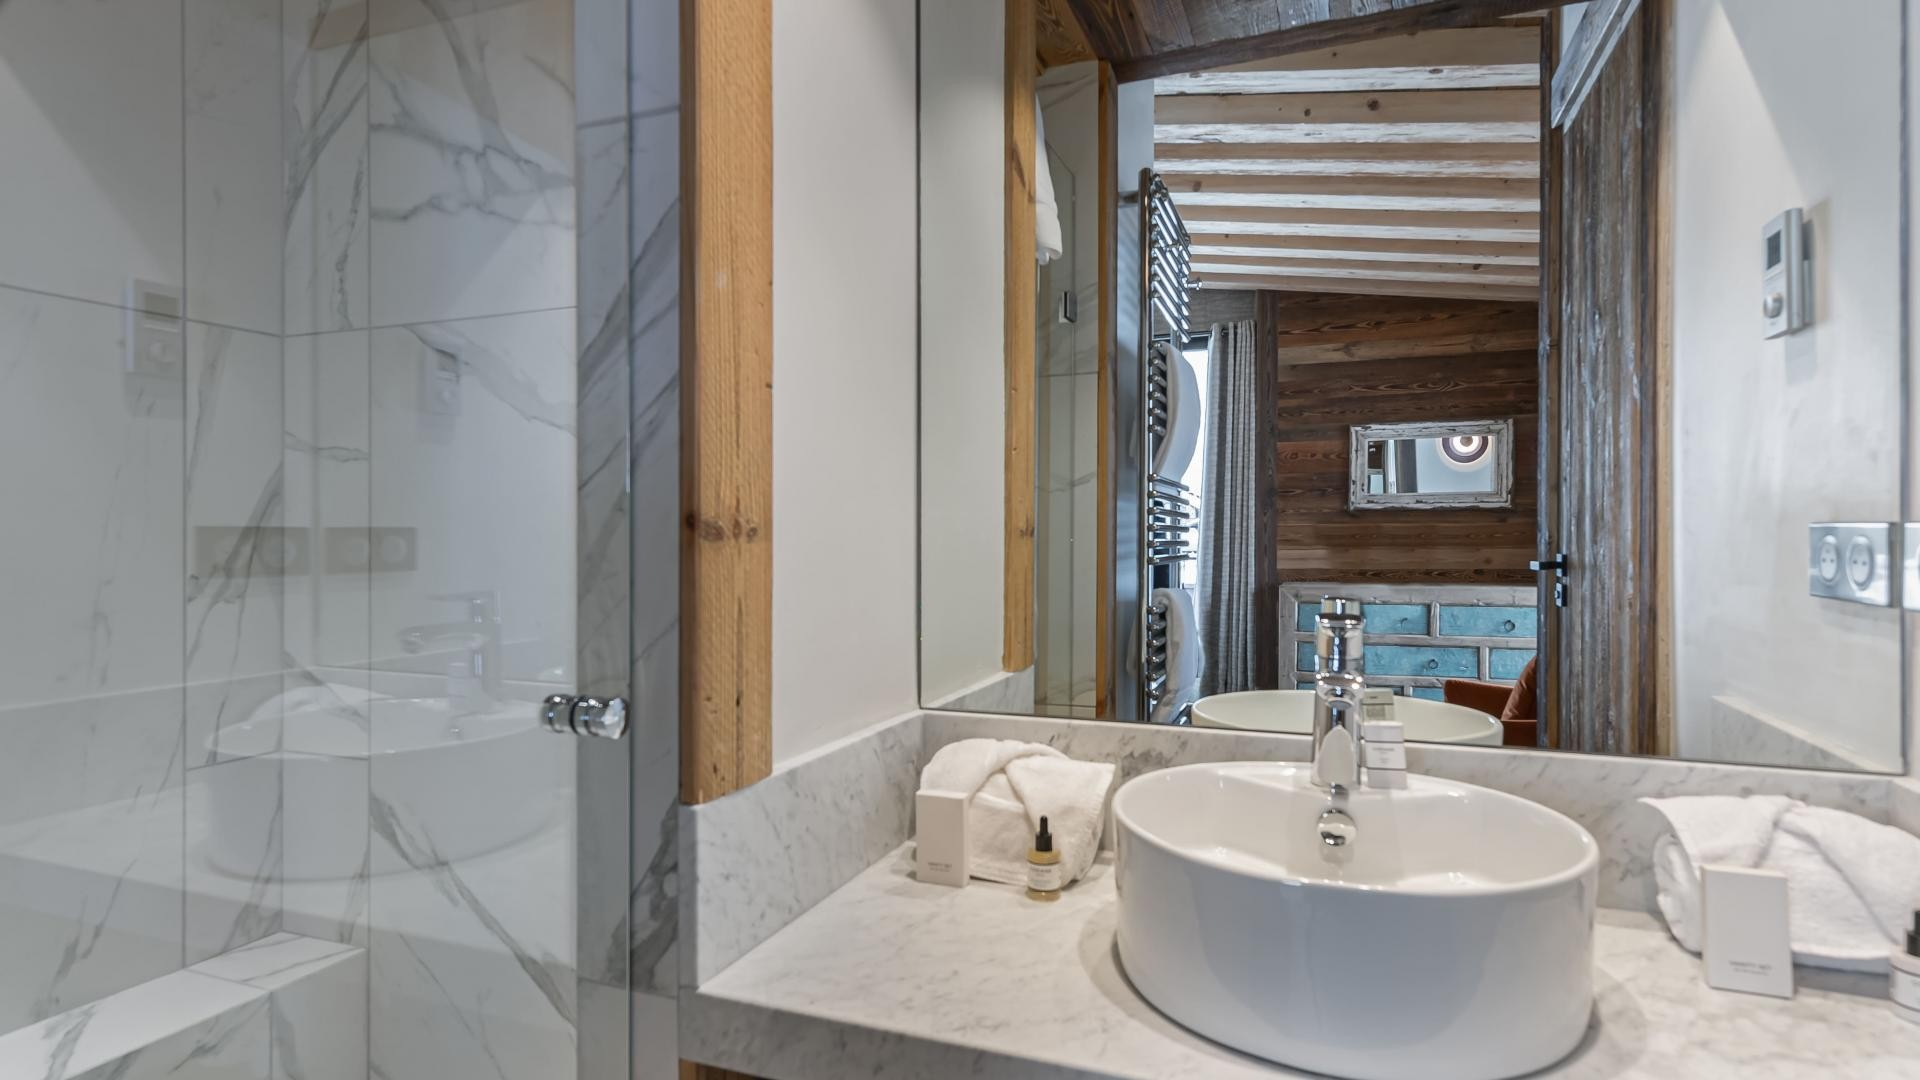 Val d'Isère Location Appartement Luxe Varvate Douche